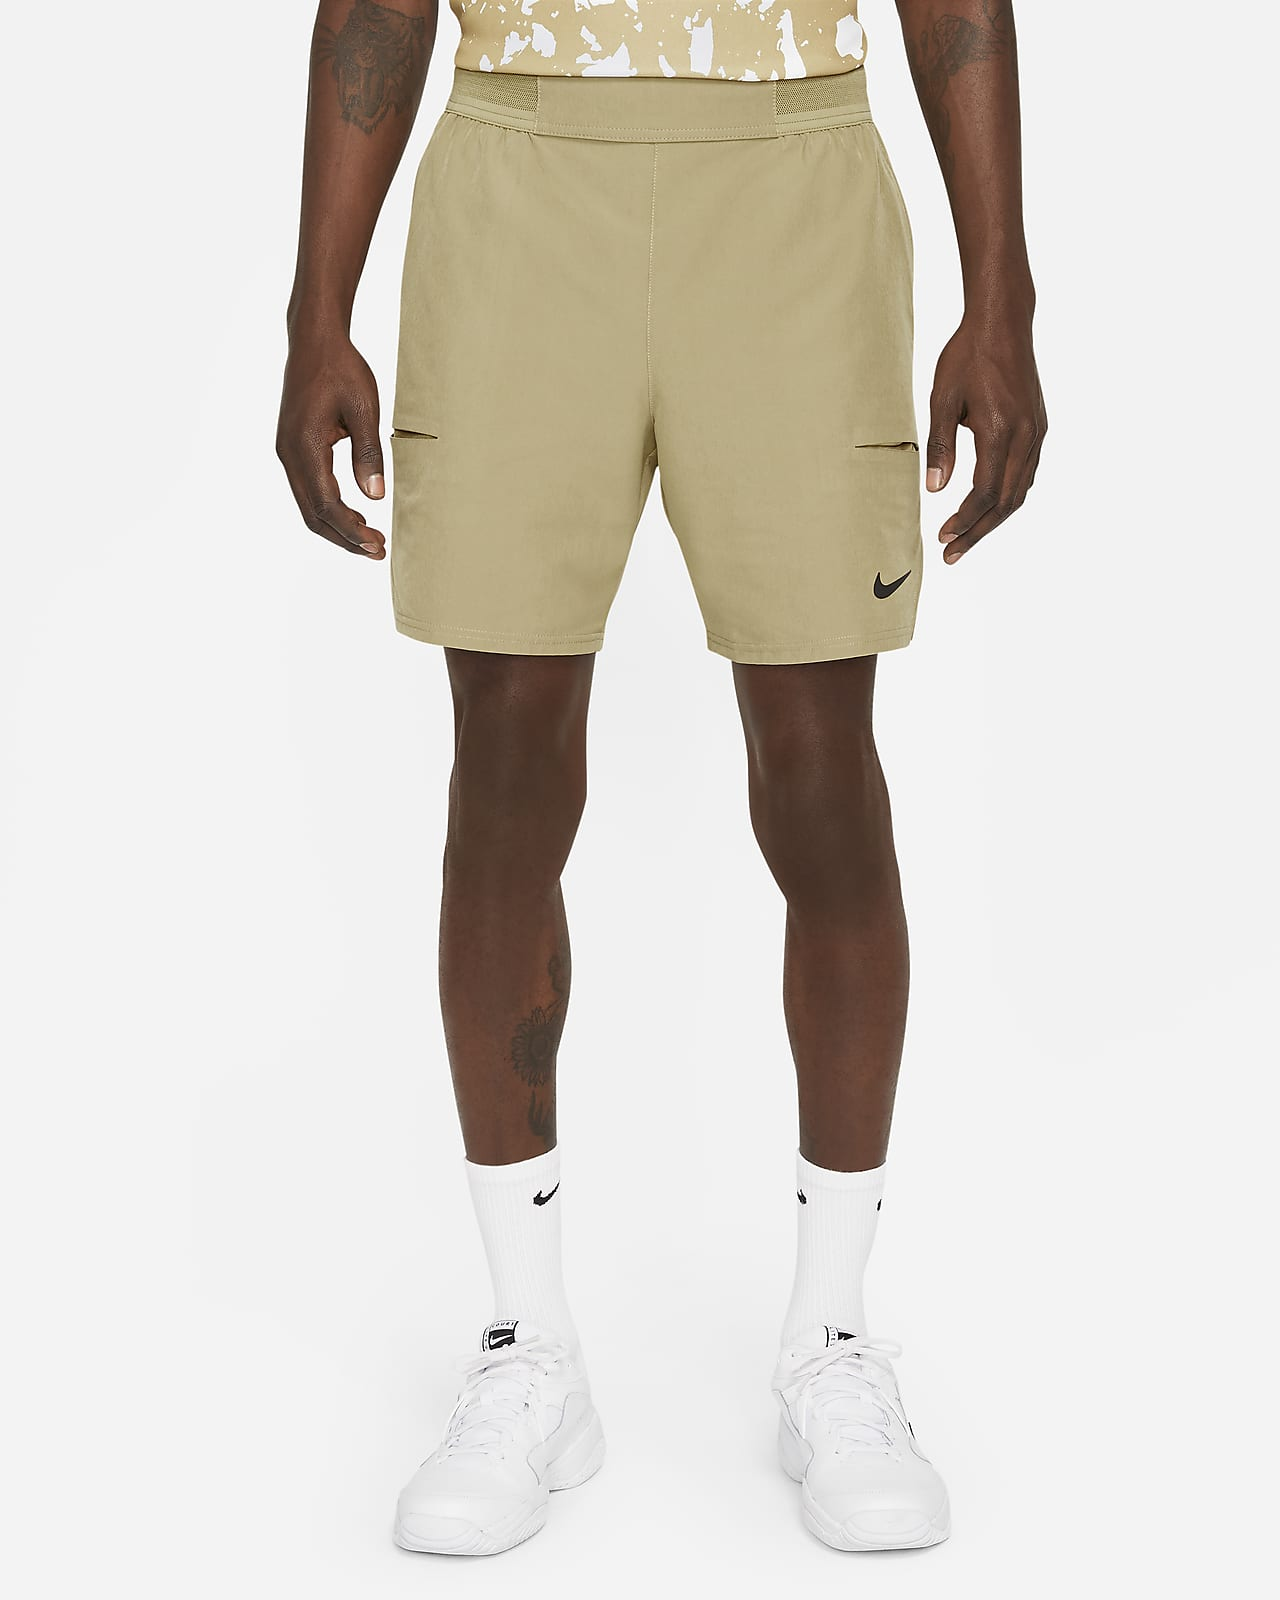 NikeCourt Dri-FIT Advantage Men's 18cm (approx.) Tennis Shorts